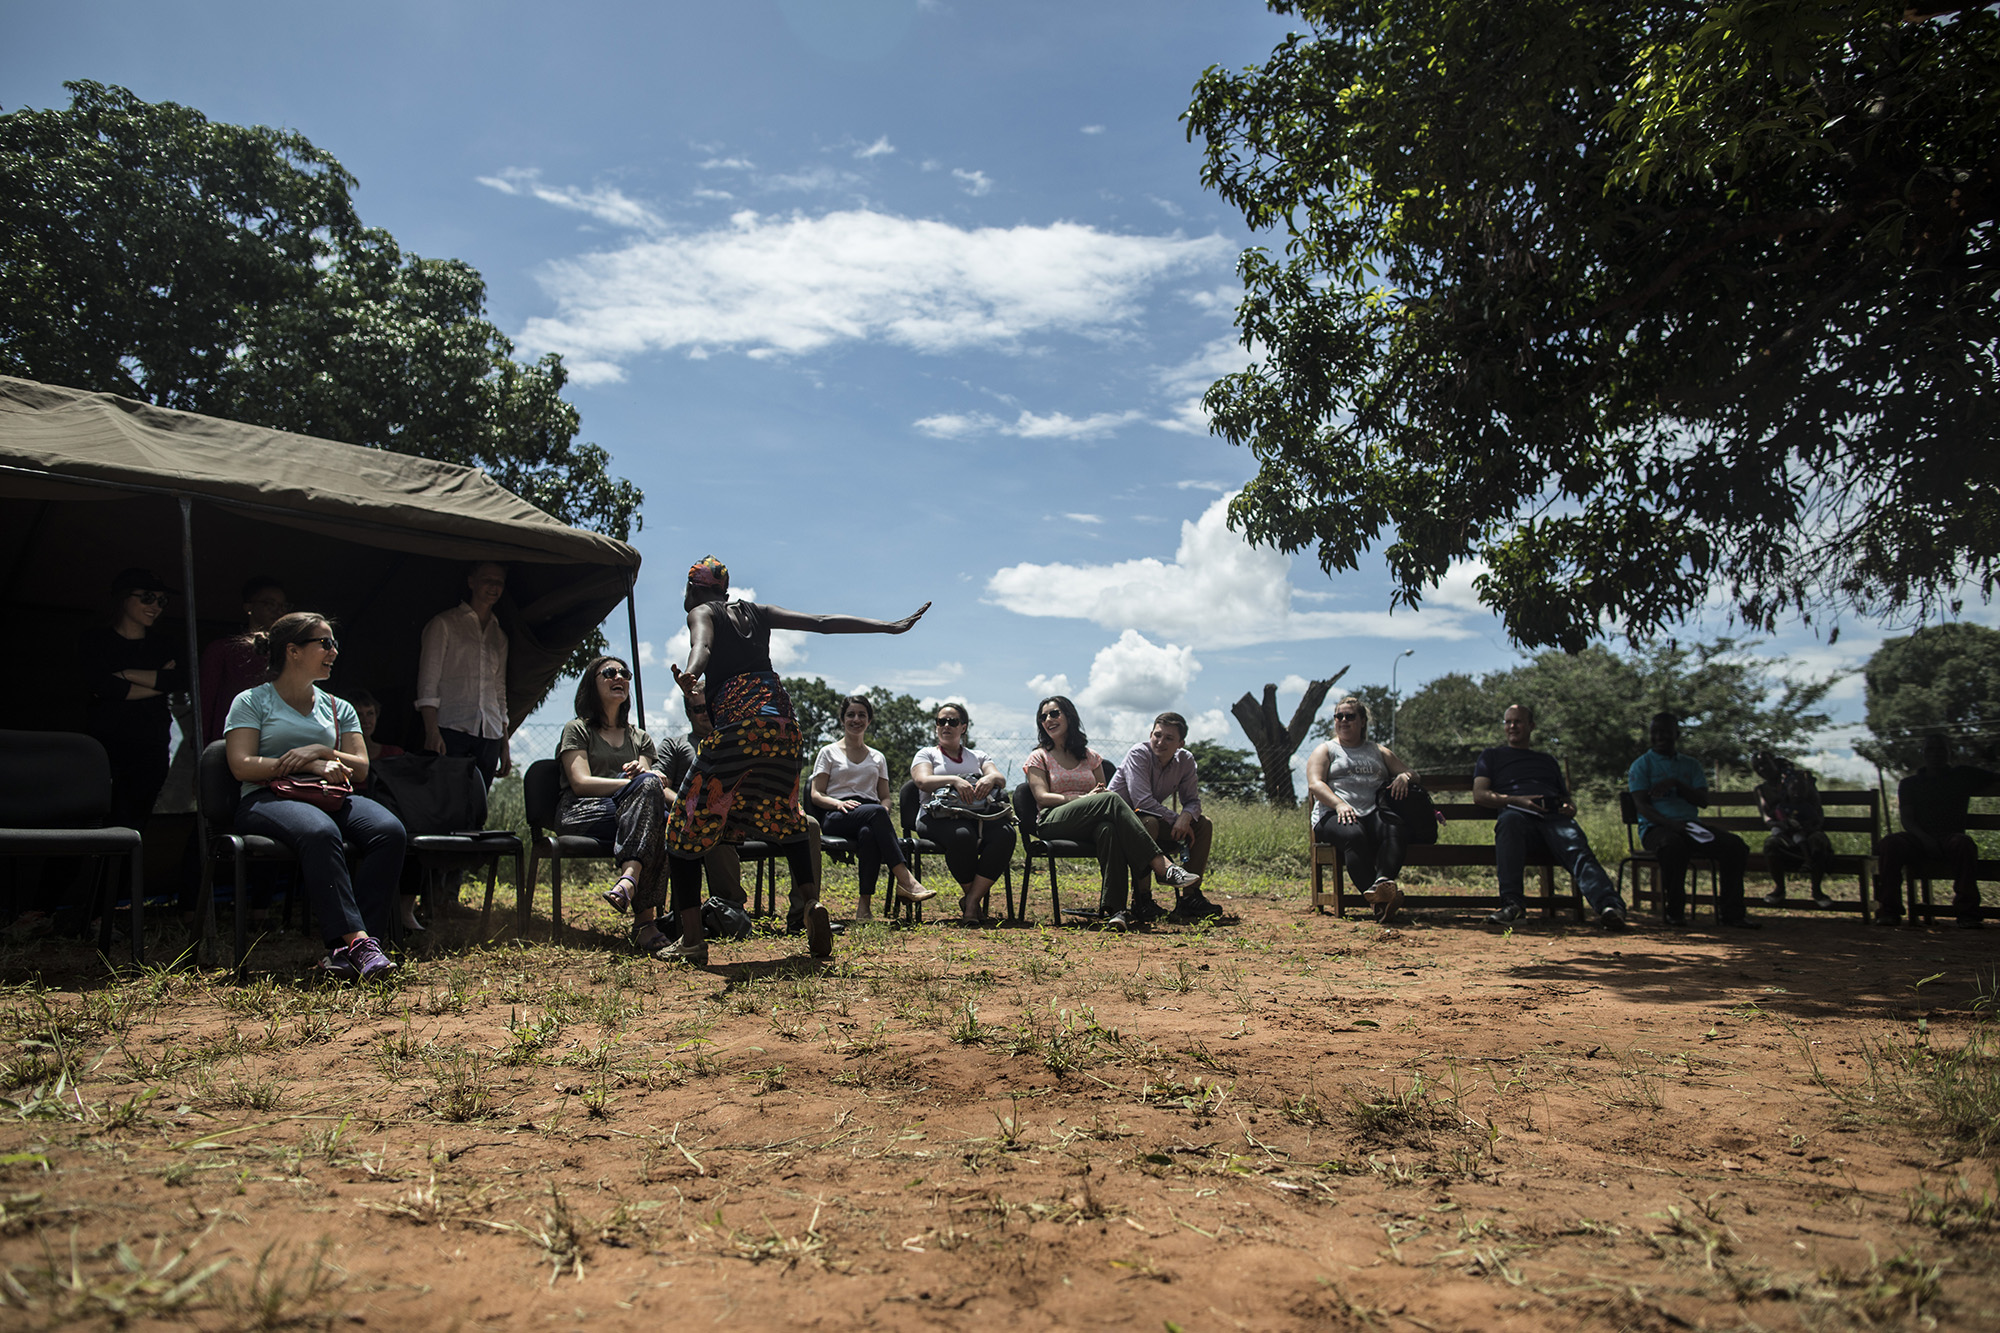 LIVINGSTONE, ZAMBIA: Feb. 20, 2018 - Members of the CARE Learning Tour to Zambia watch a dance presentation while visiting the One-Stop GBV Center in Livingstone. Photo by Sarah Grile.